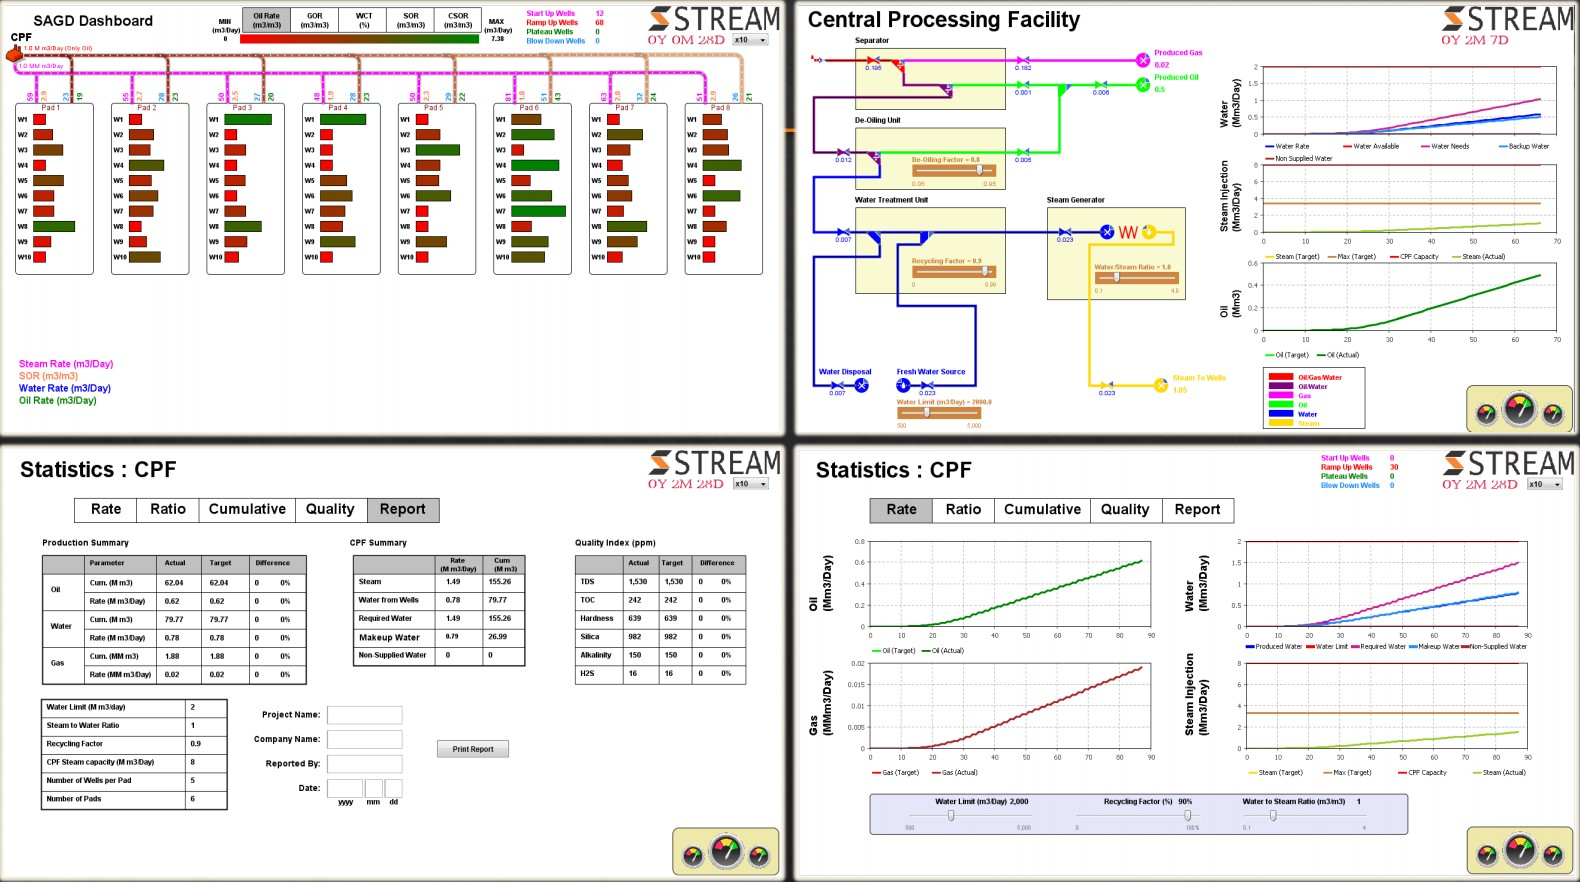 Oil Well Pad Diagram Schematic Diagrams Gas Modeling And Optimization Using Anylogic Fluid Library Simulation